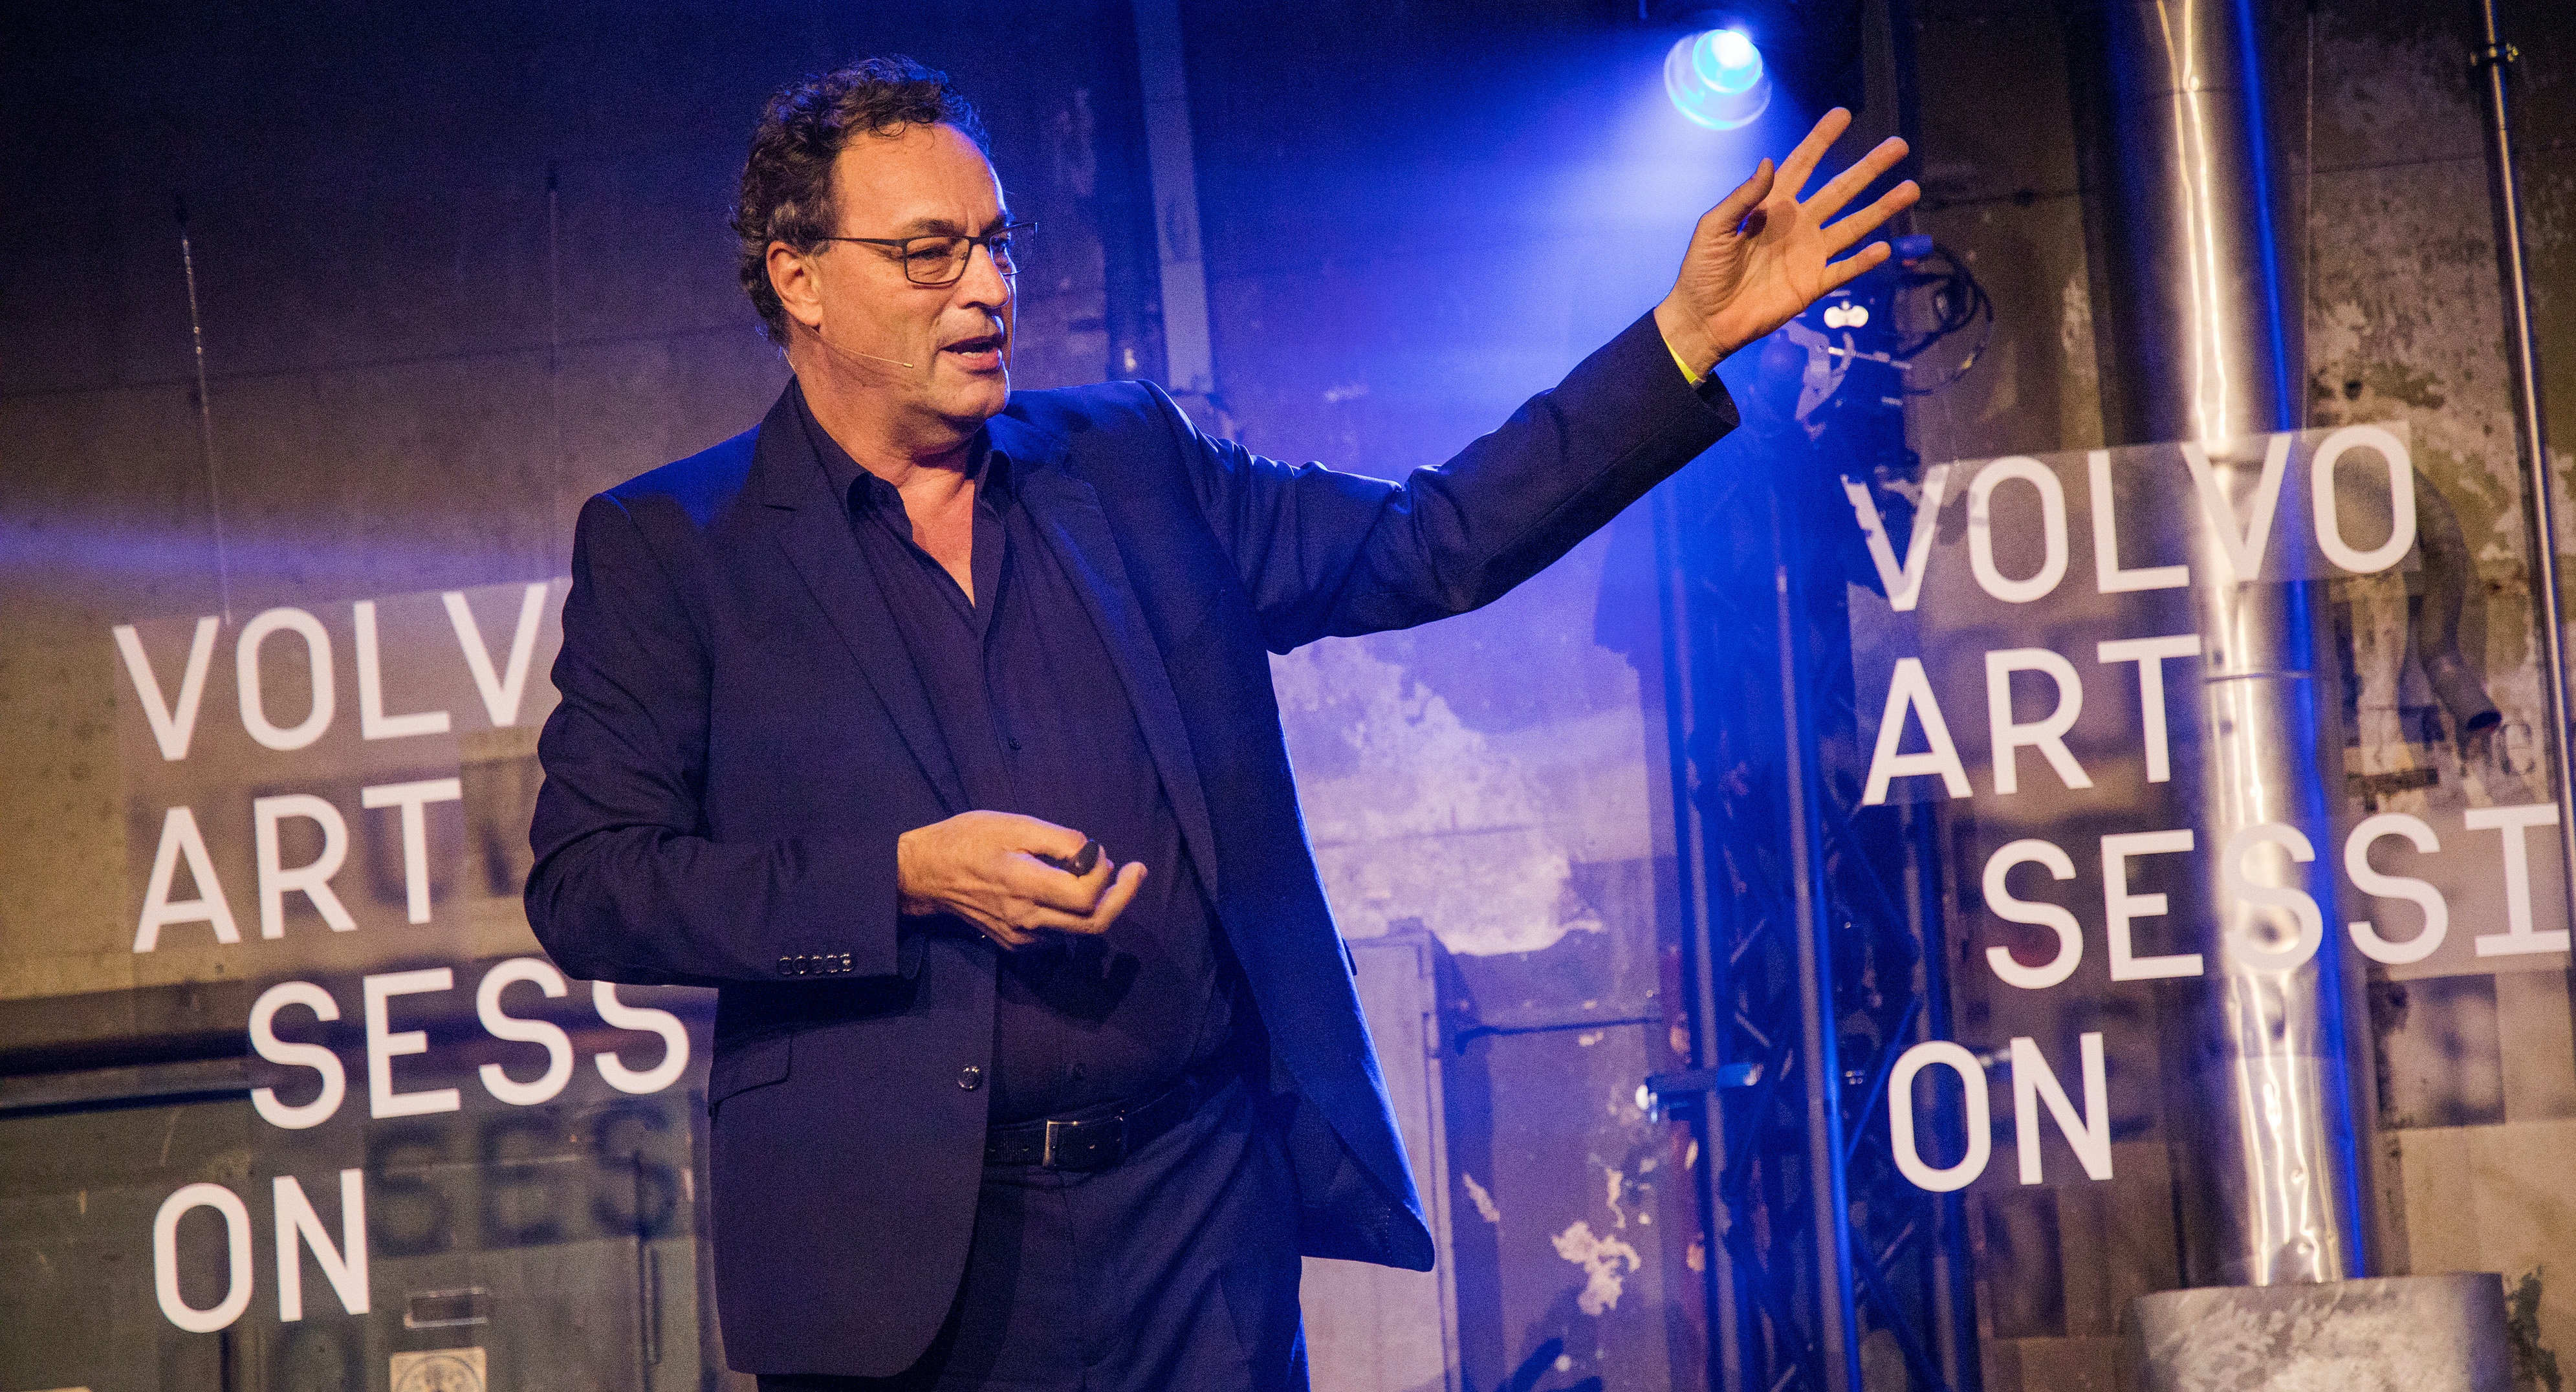 Gerd Leonhard Volvo Art Session 2019